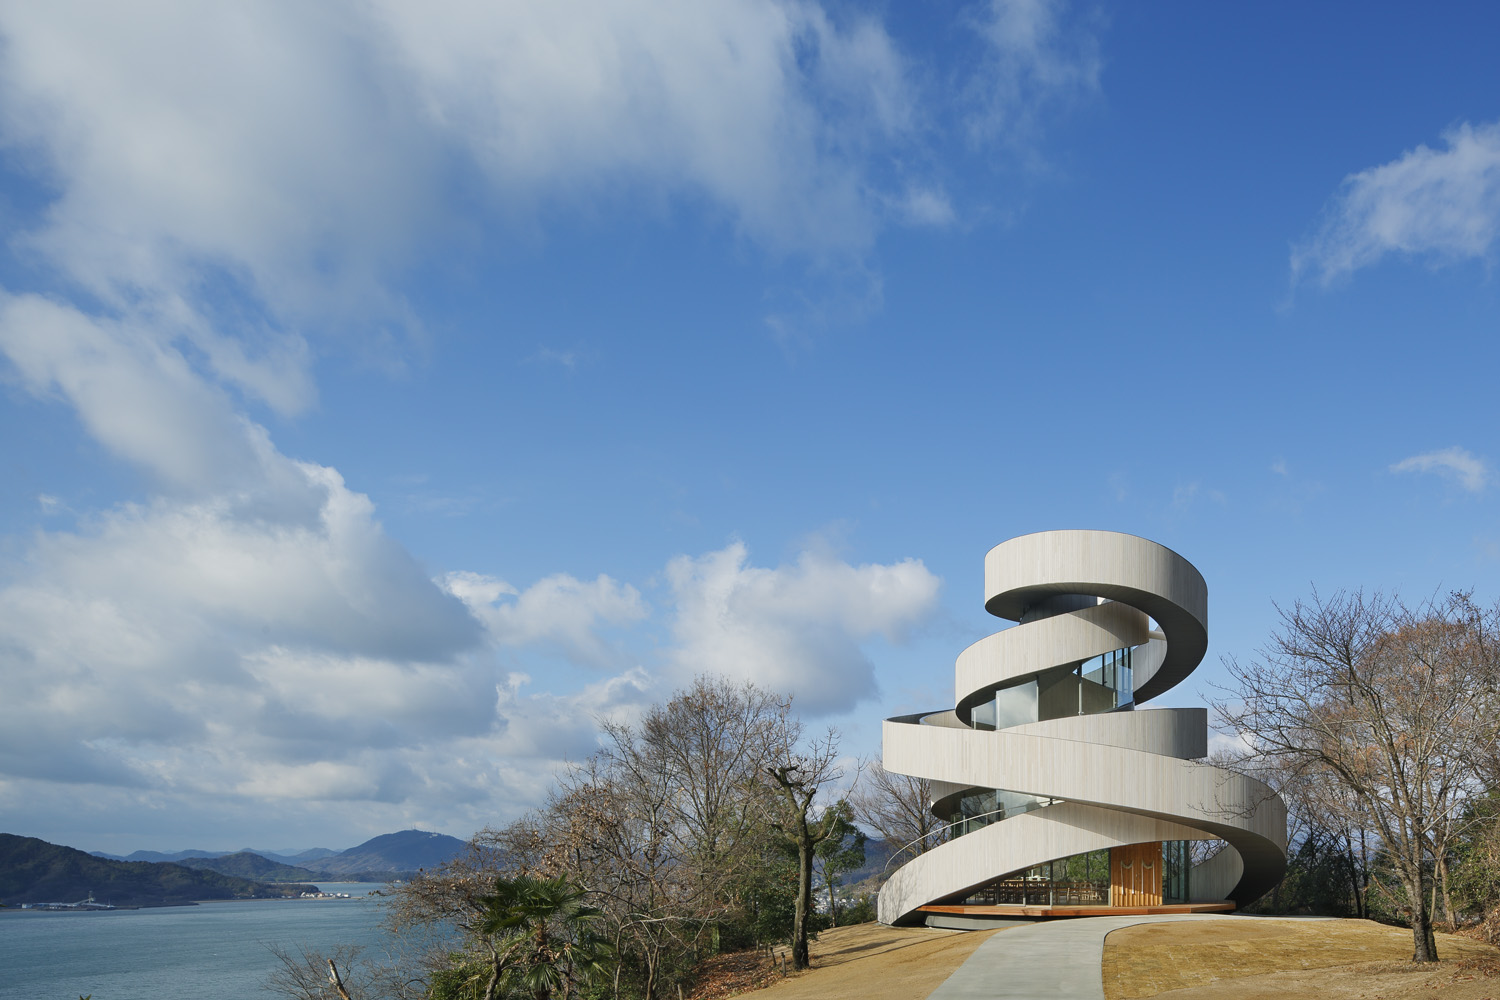 Bella Vista Sakaigahama Ribbon Chapel Awarded JCD Design Award 2014 Grand Prix World's First Double-spiral Construction